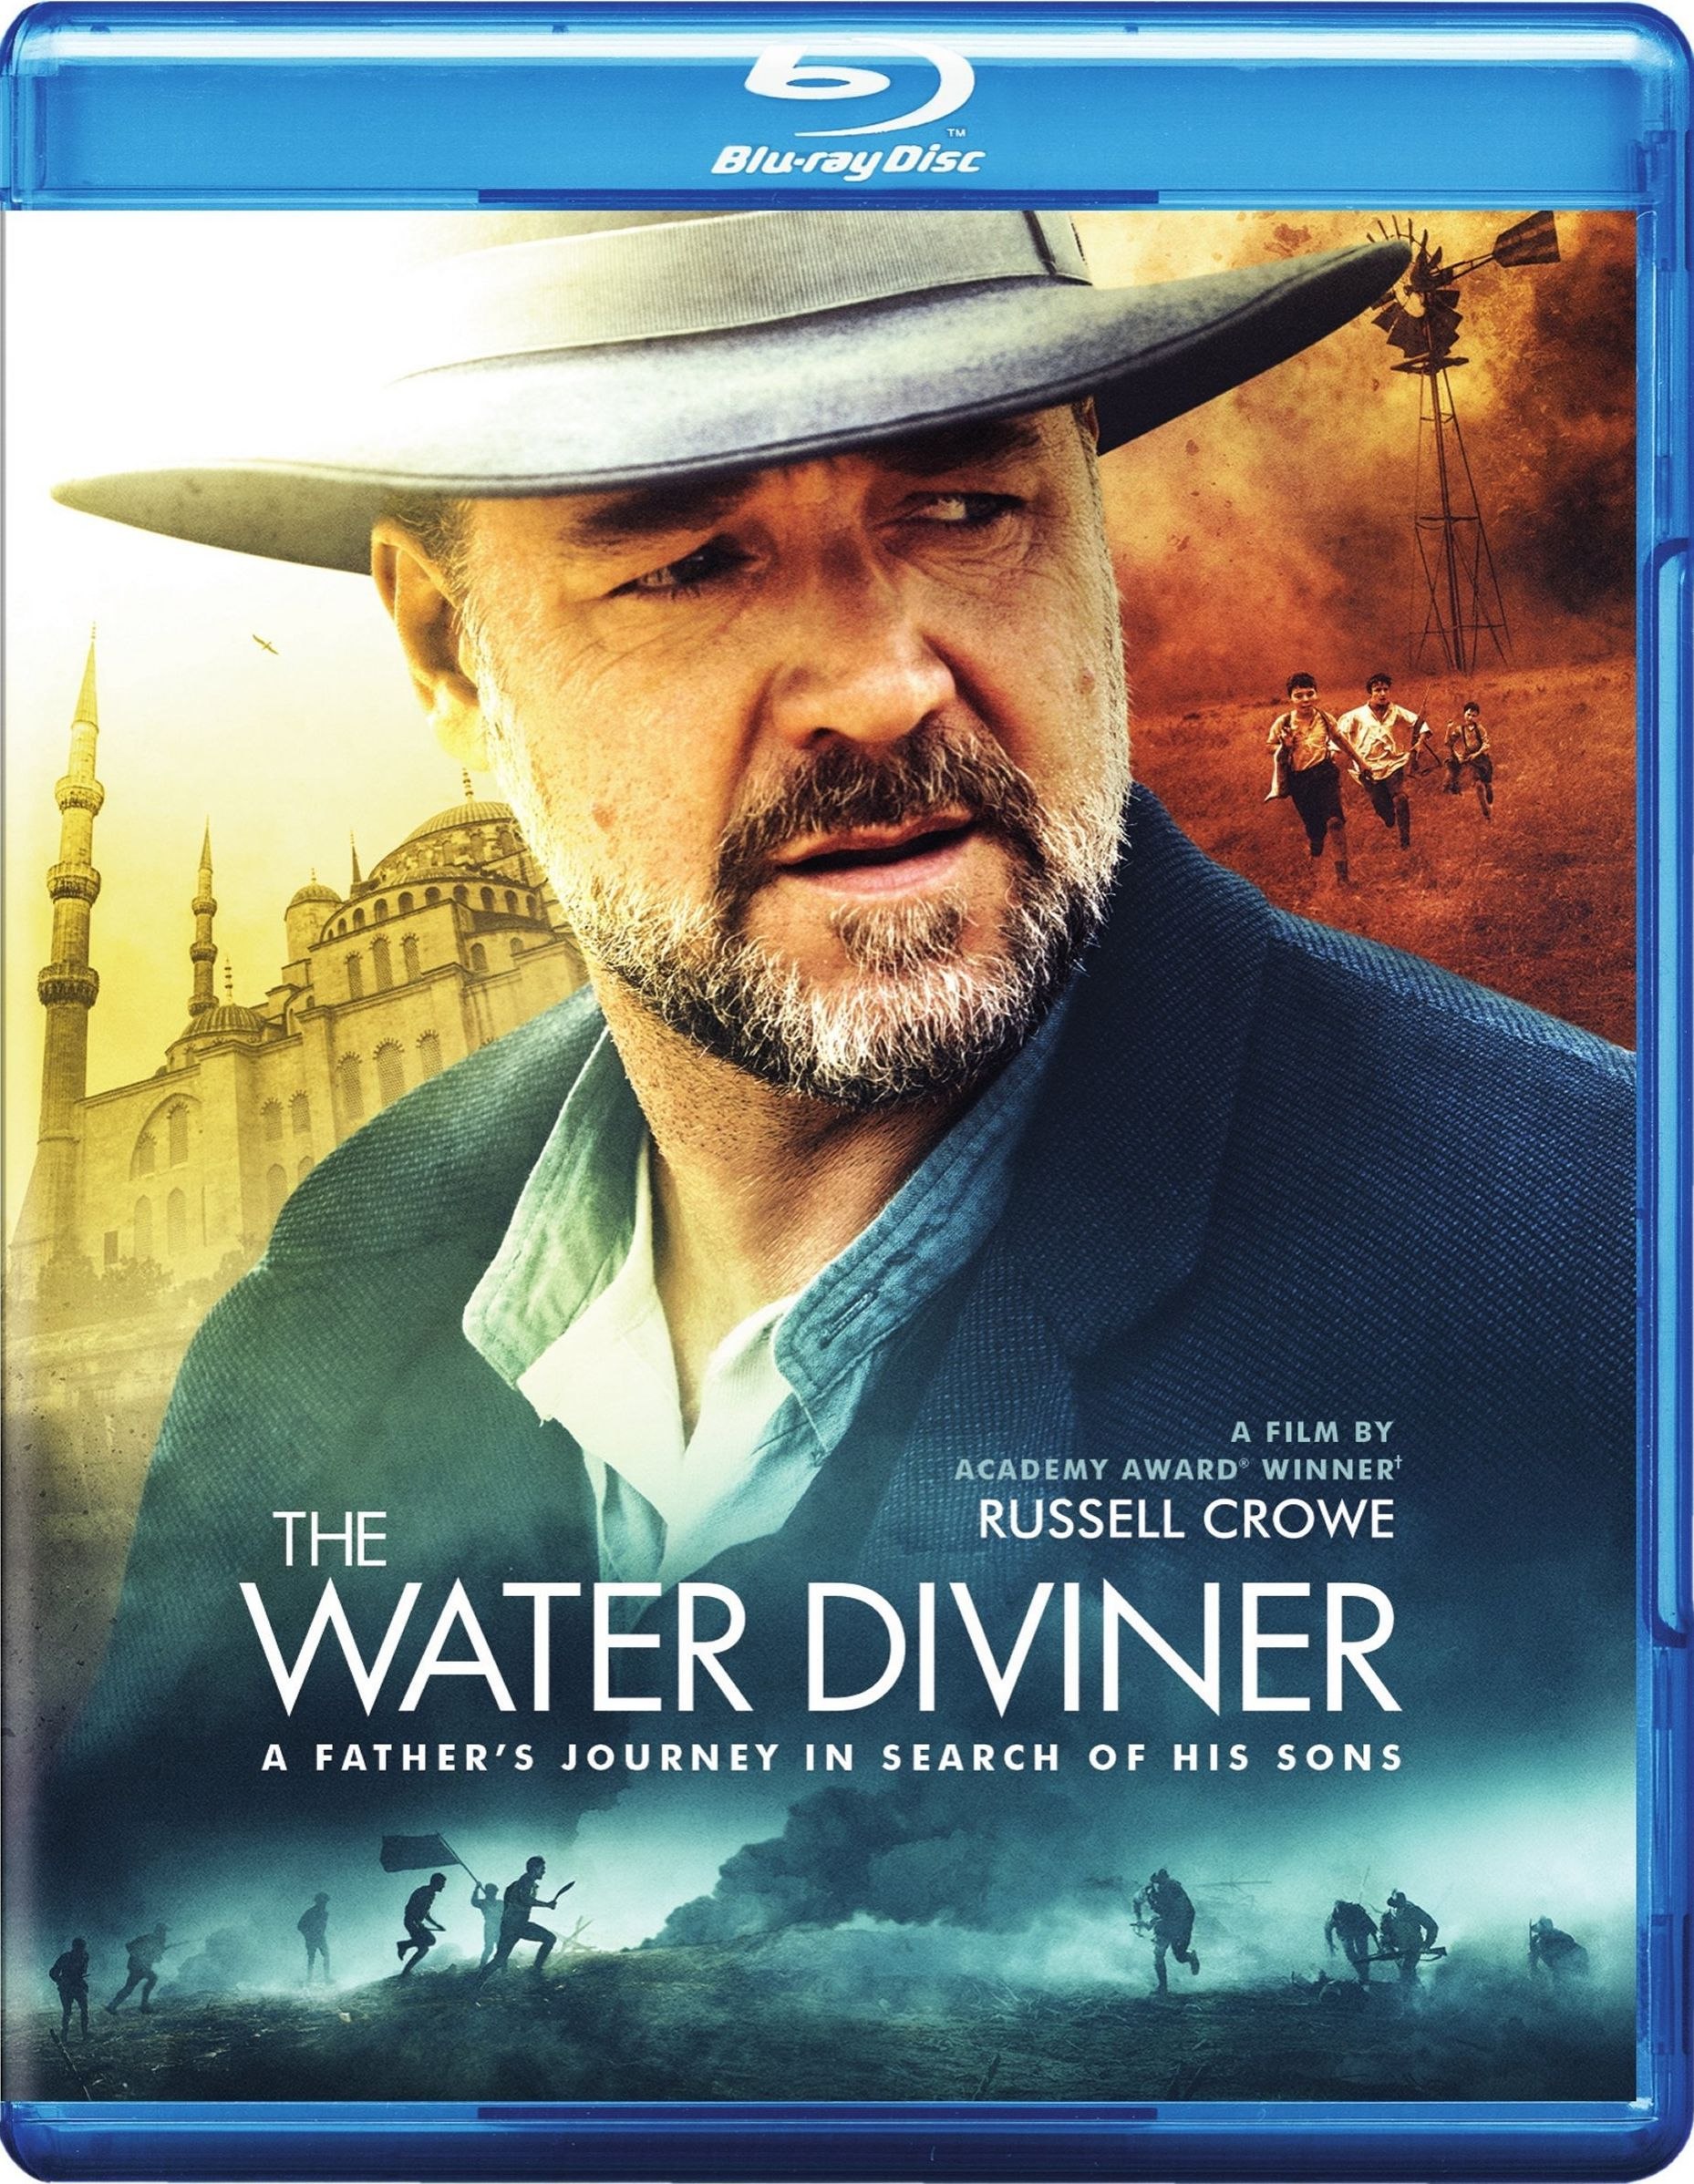 The Water Divinert Blu-ray Review